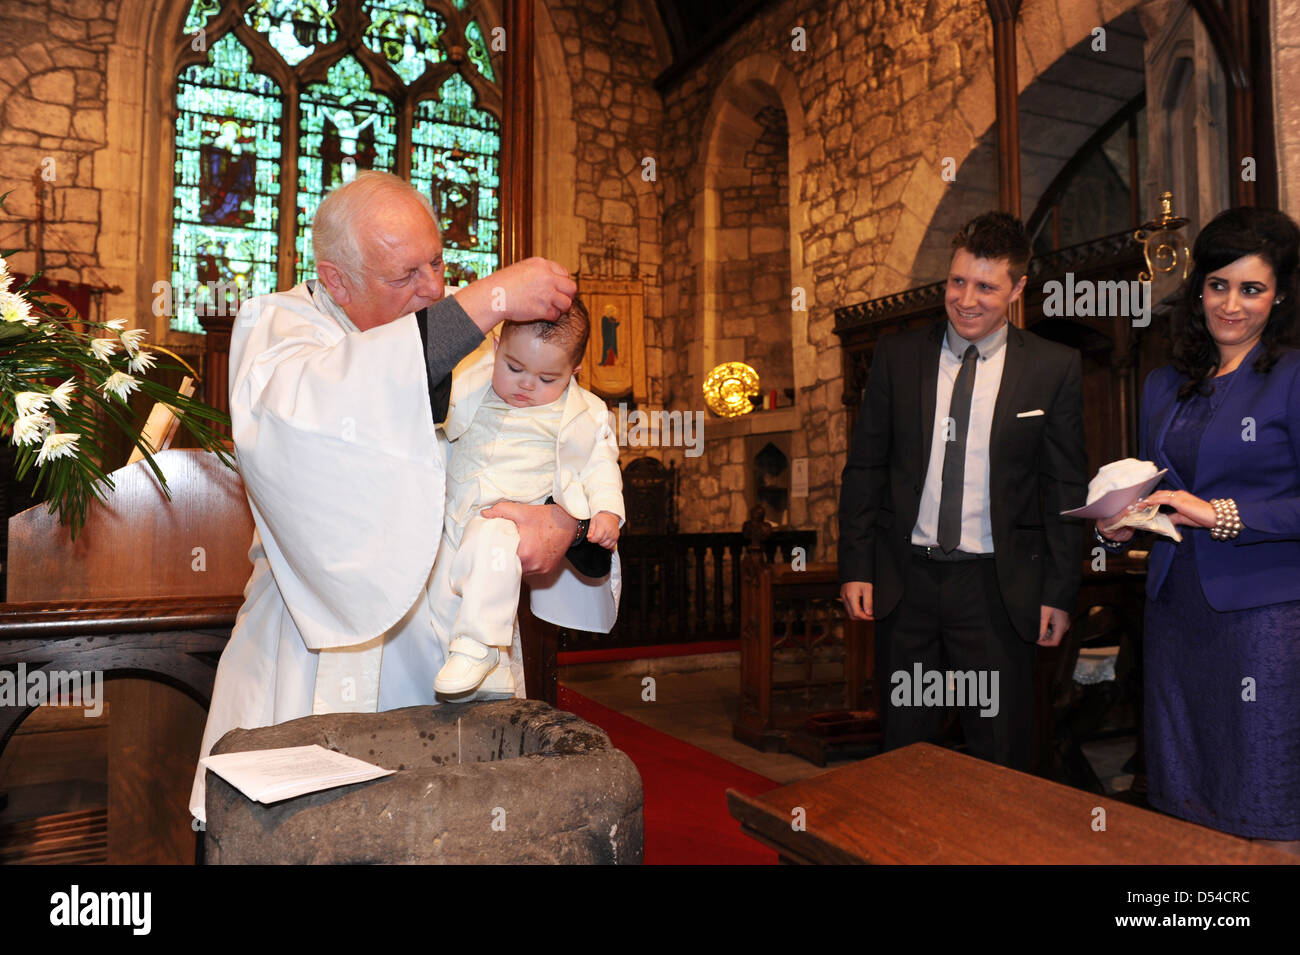 Young child being christened by a vicar and watched by the parents England Uk - Stock Image